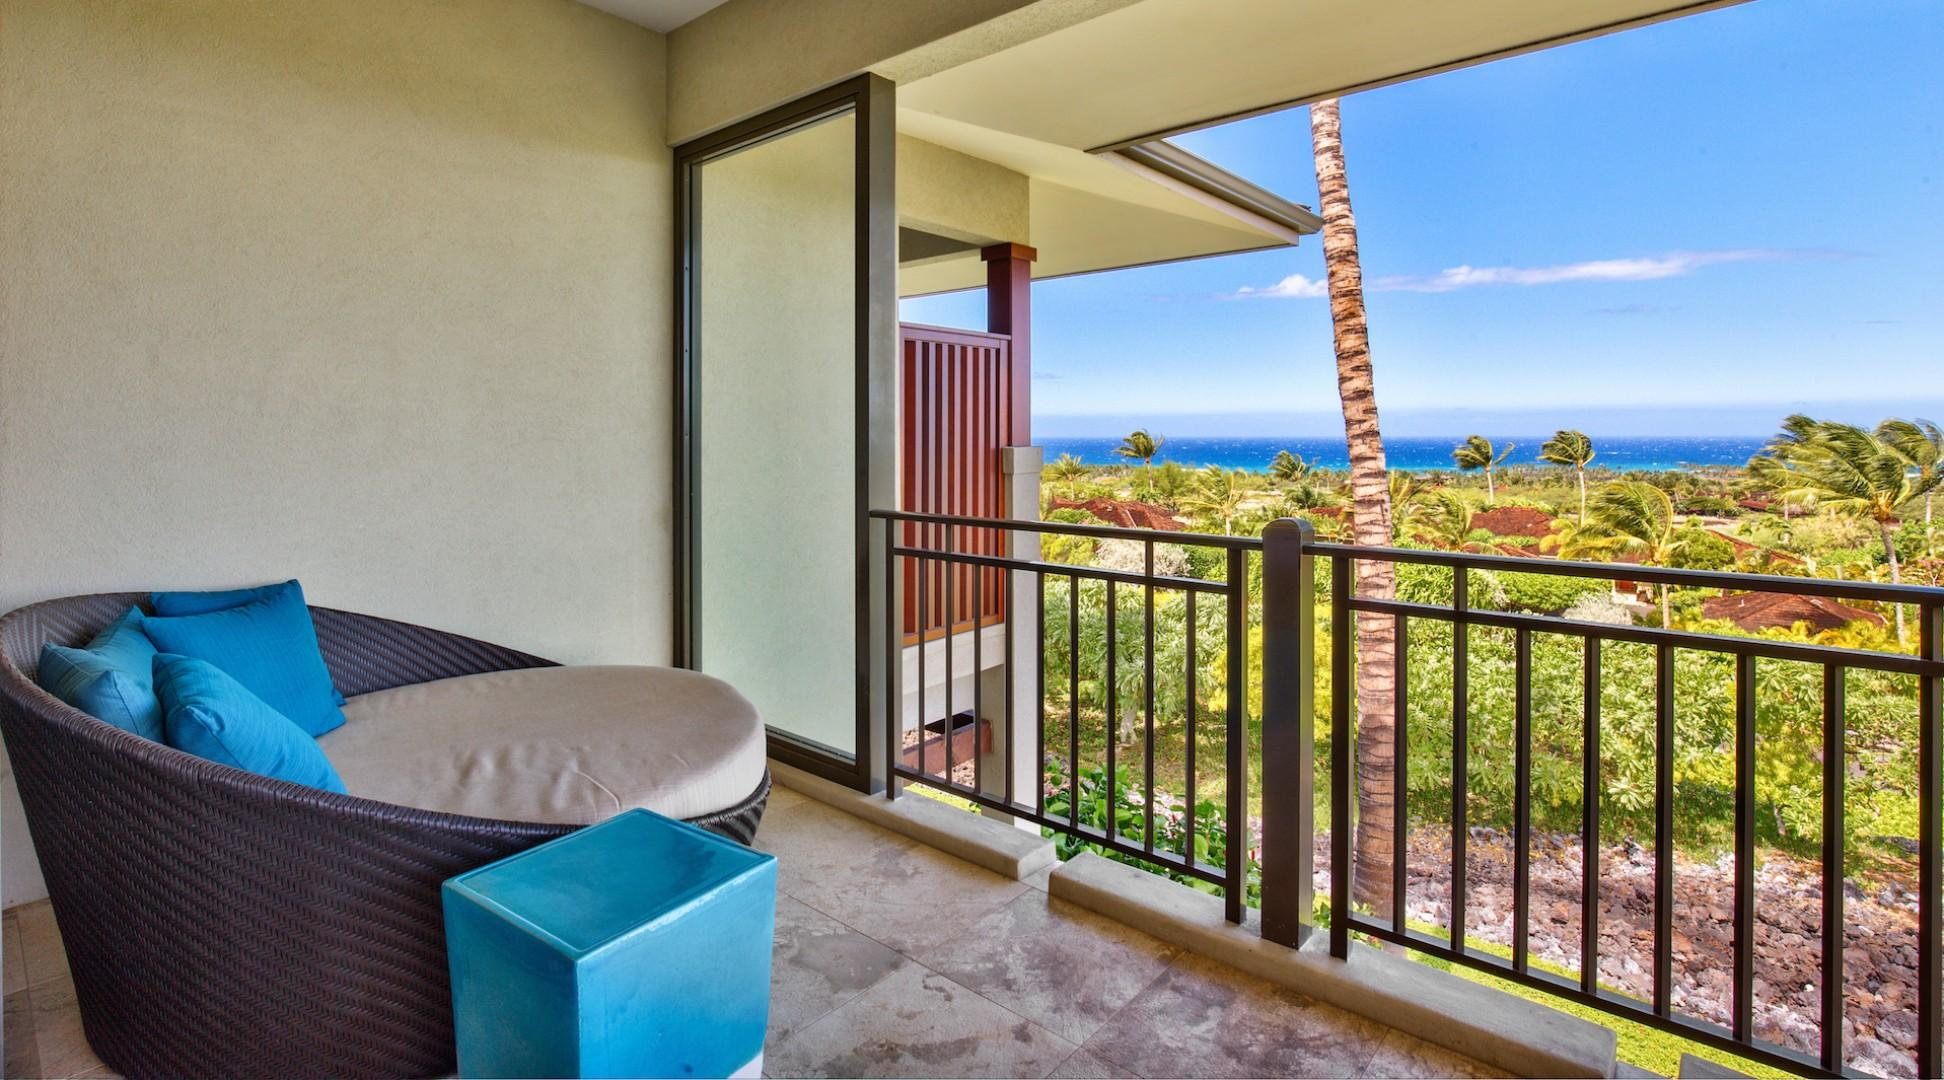 Private balcony off master bedroom.